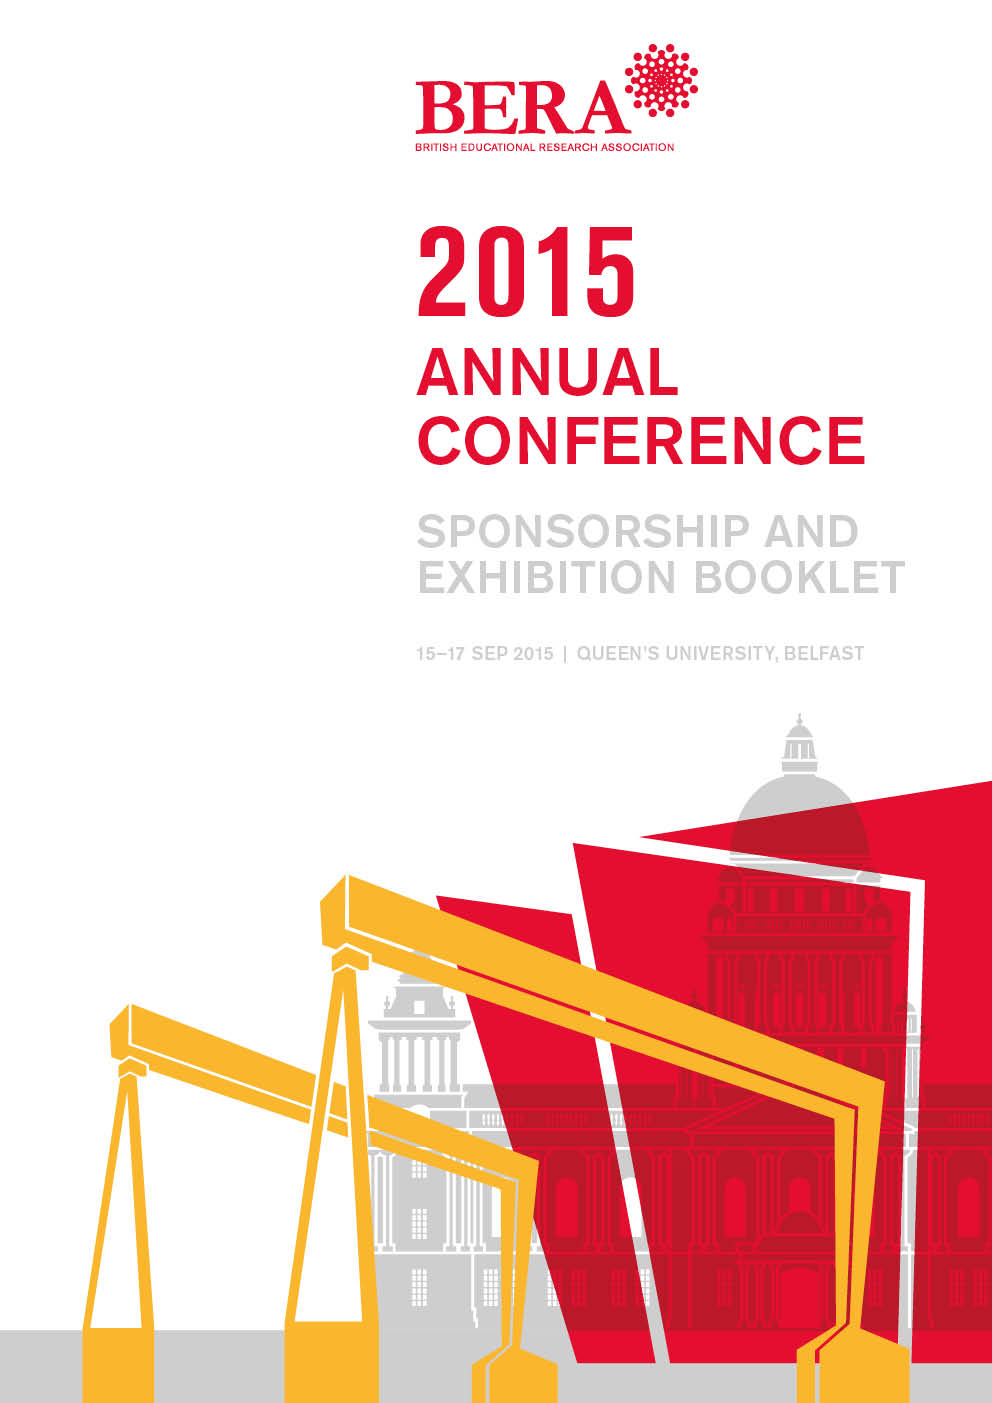 Image of front cover of sponsorship booklet